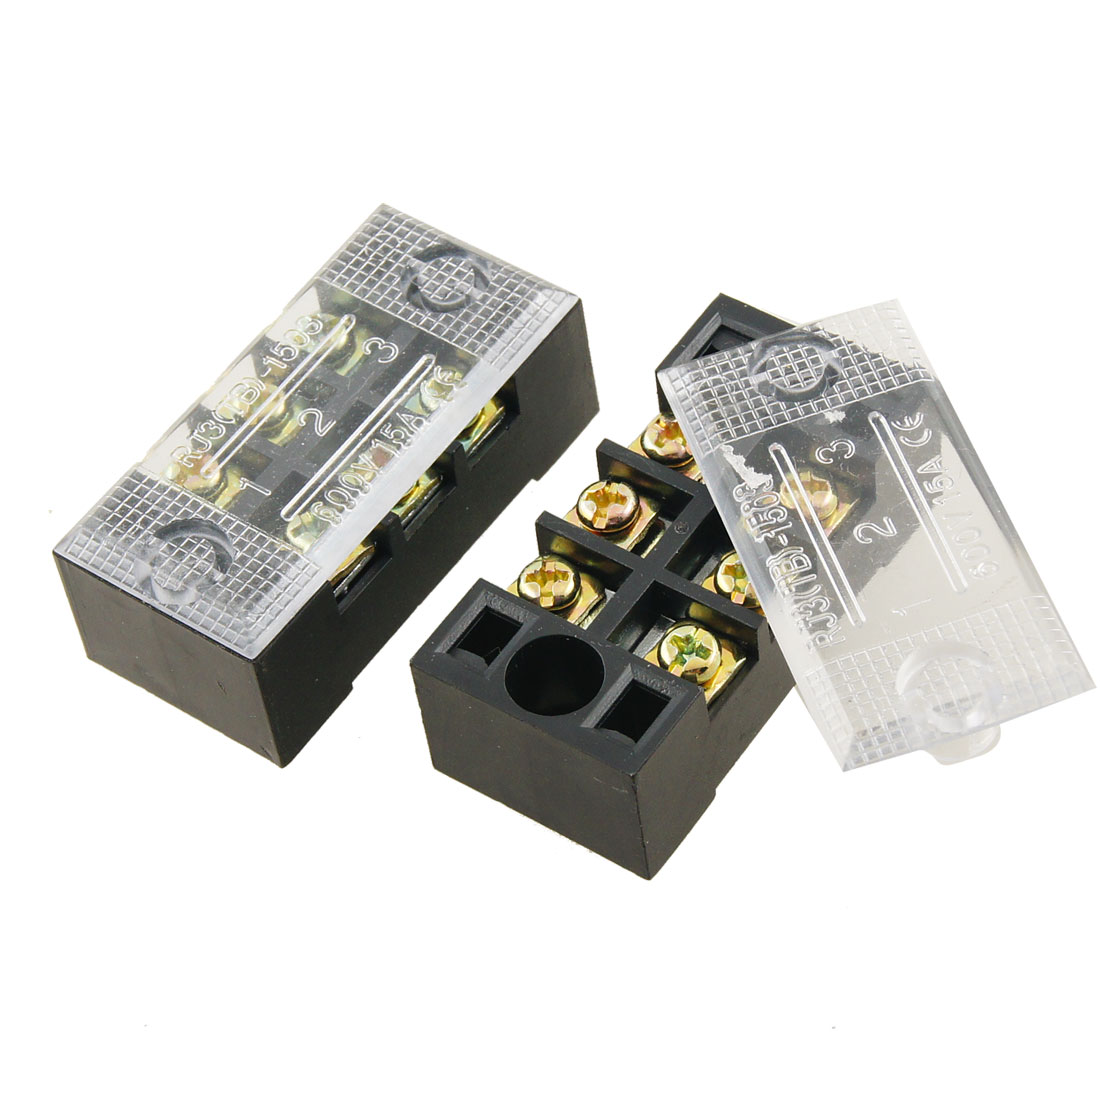 2 Pcs 15A Plastic Housing 3 Position Wire Connector Barrier Terminal Block